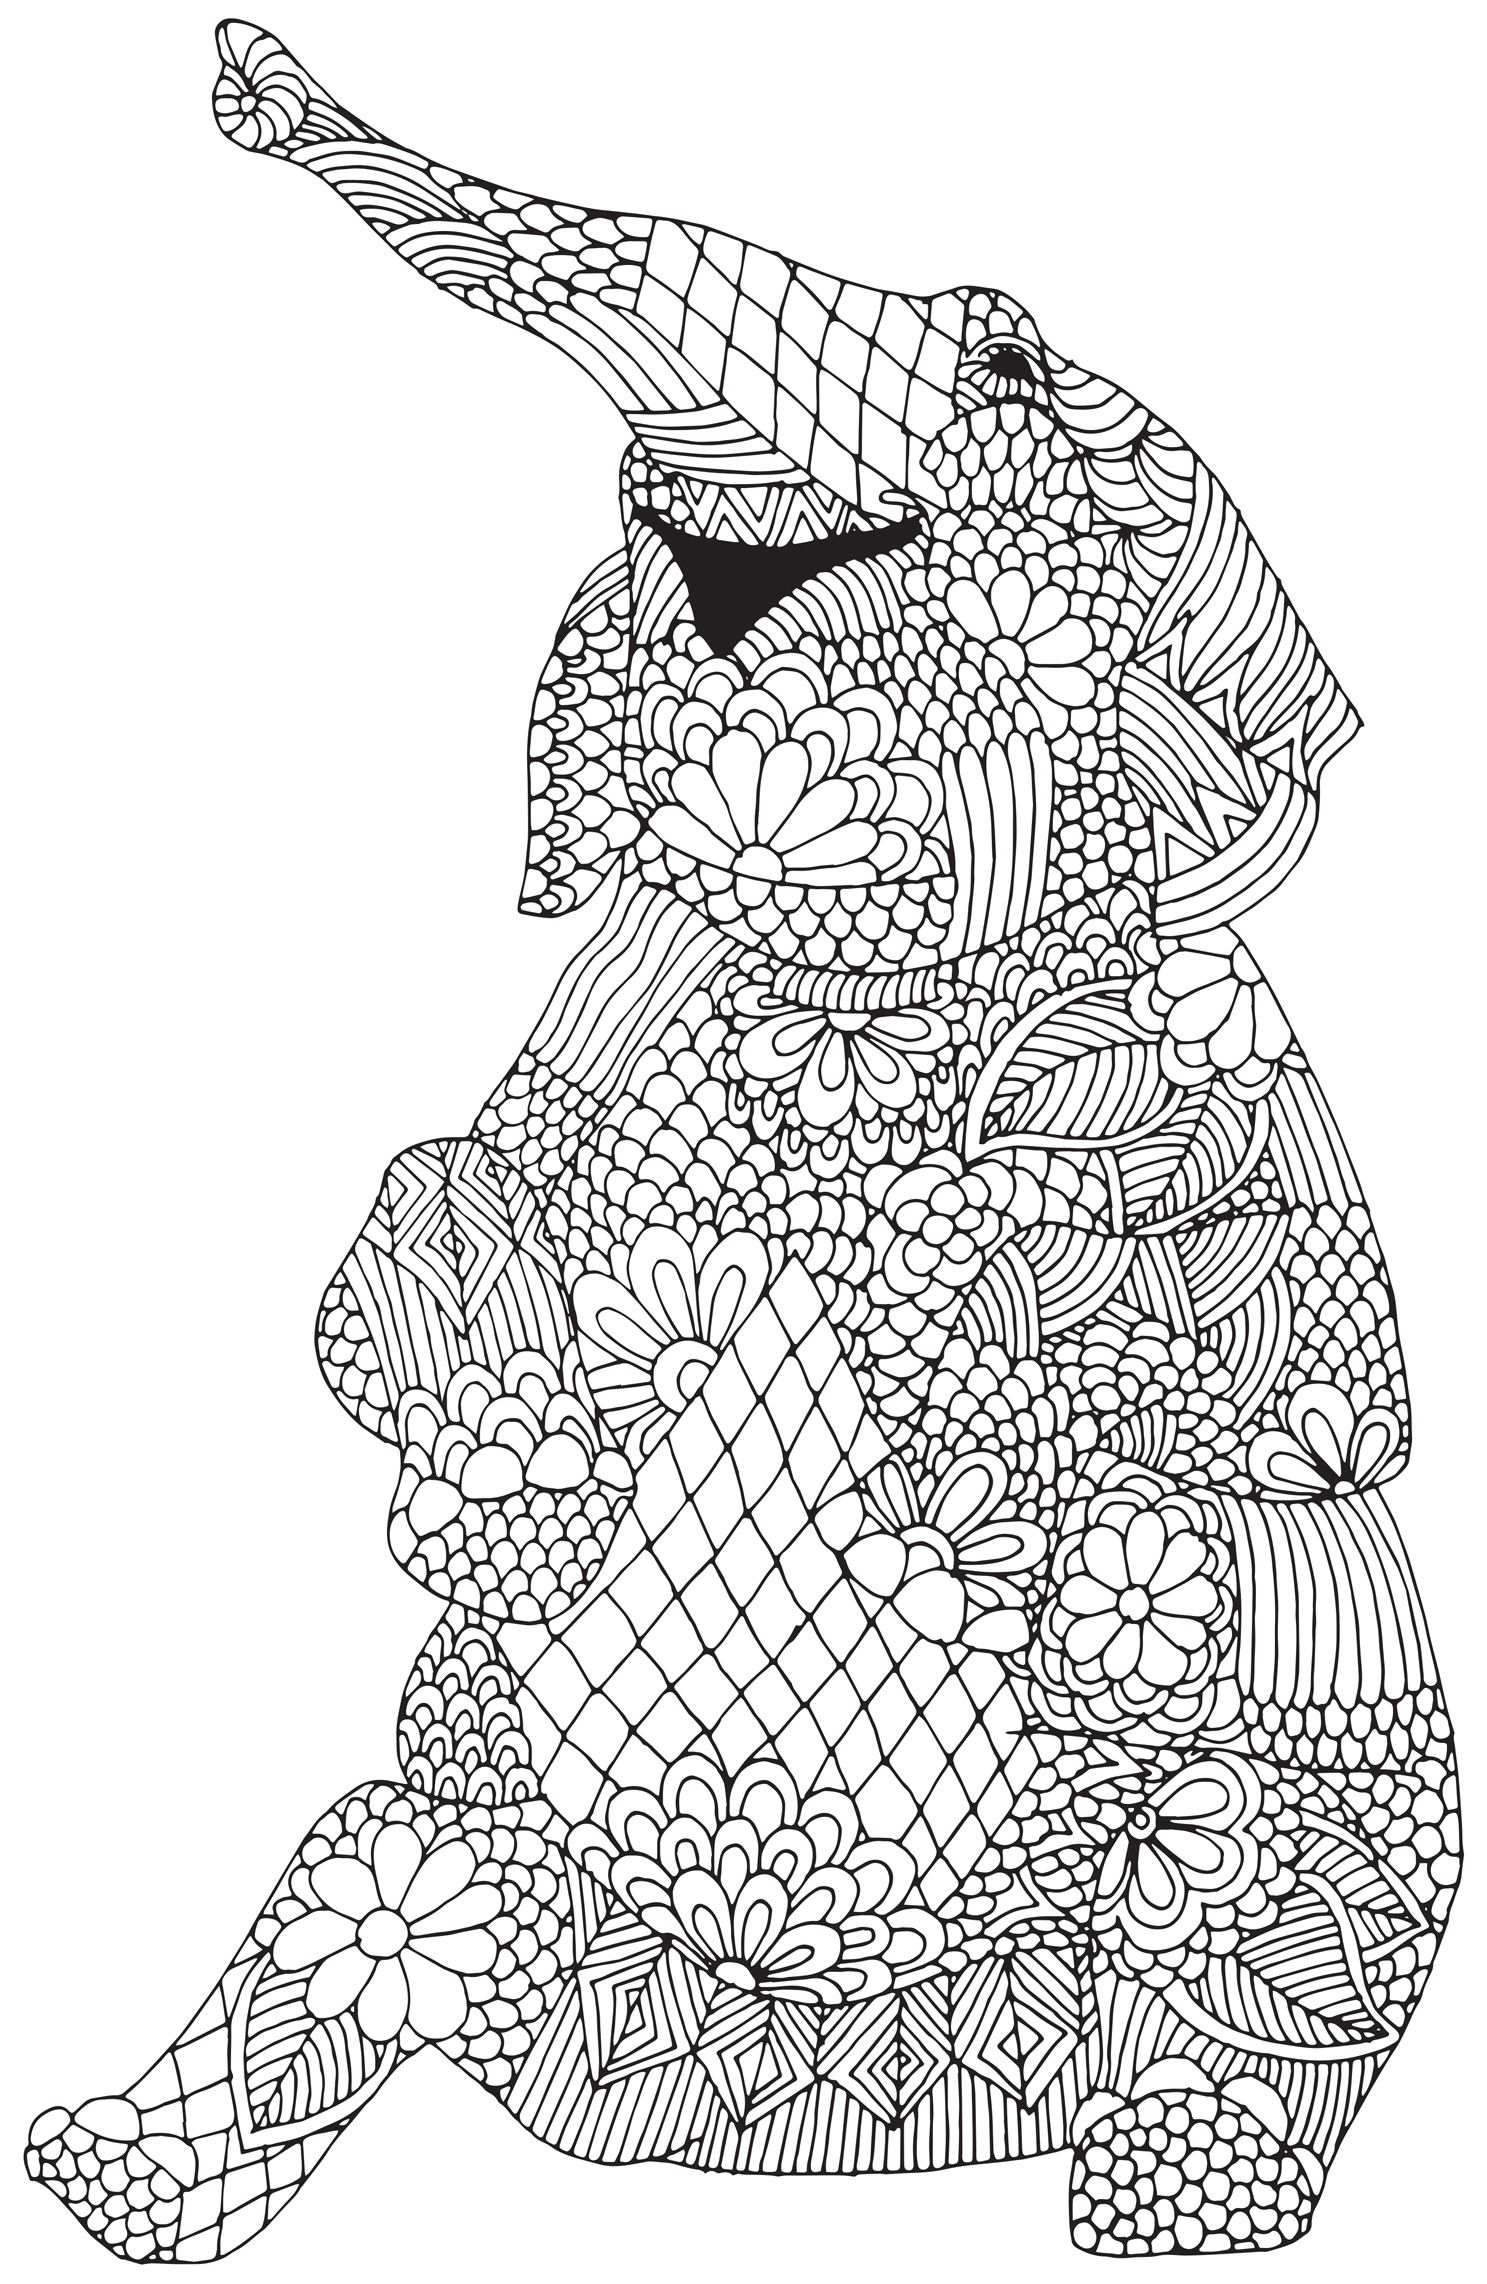 1487x2284 Elephant Patterns Elephants Coloring Pages For Adults To Print